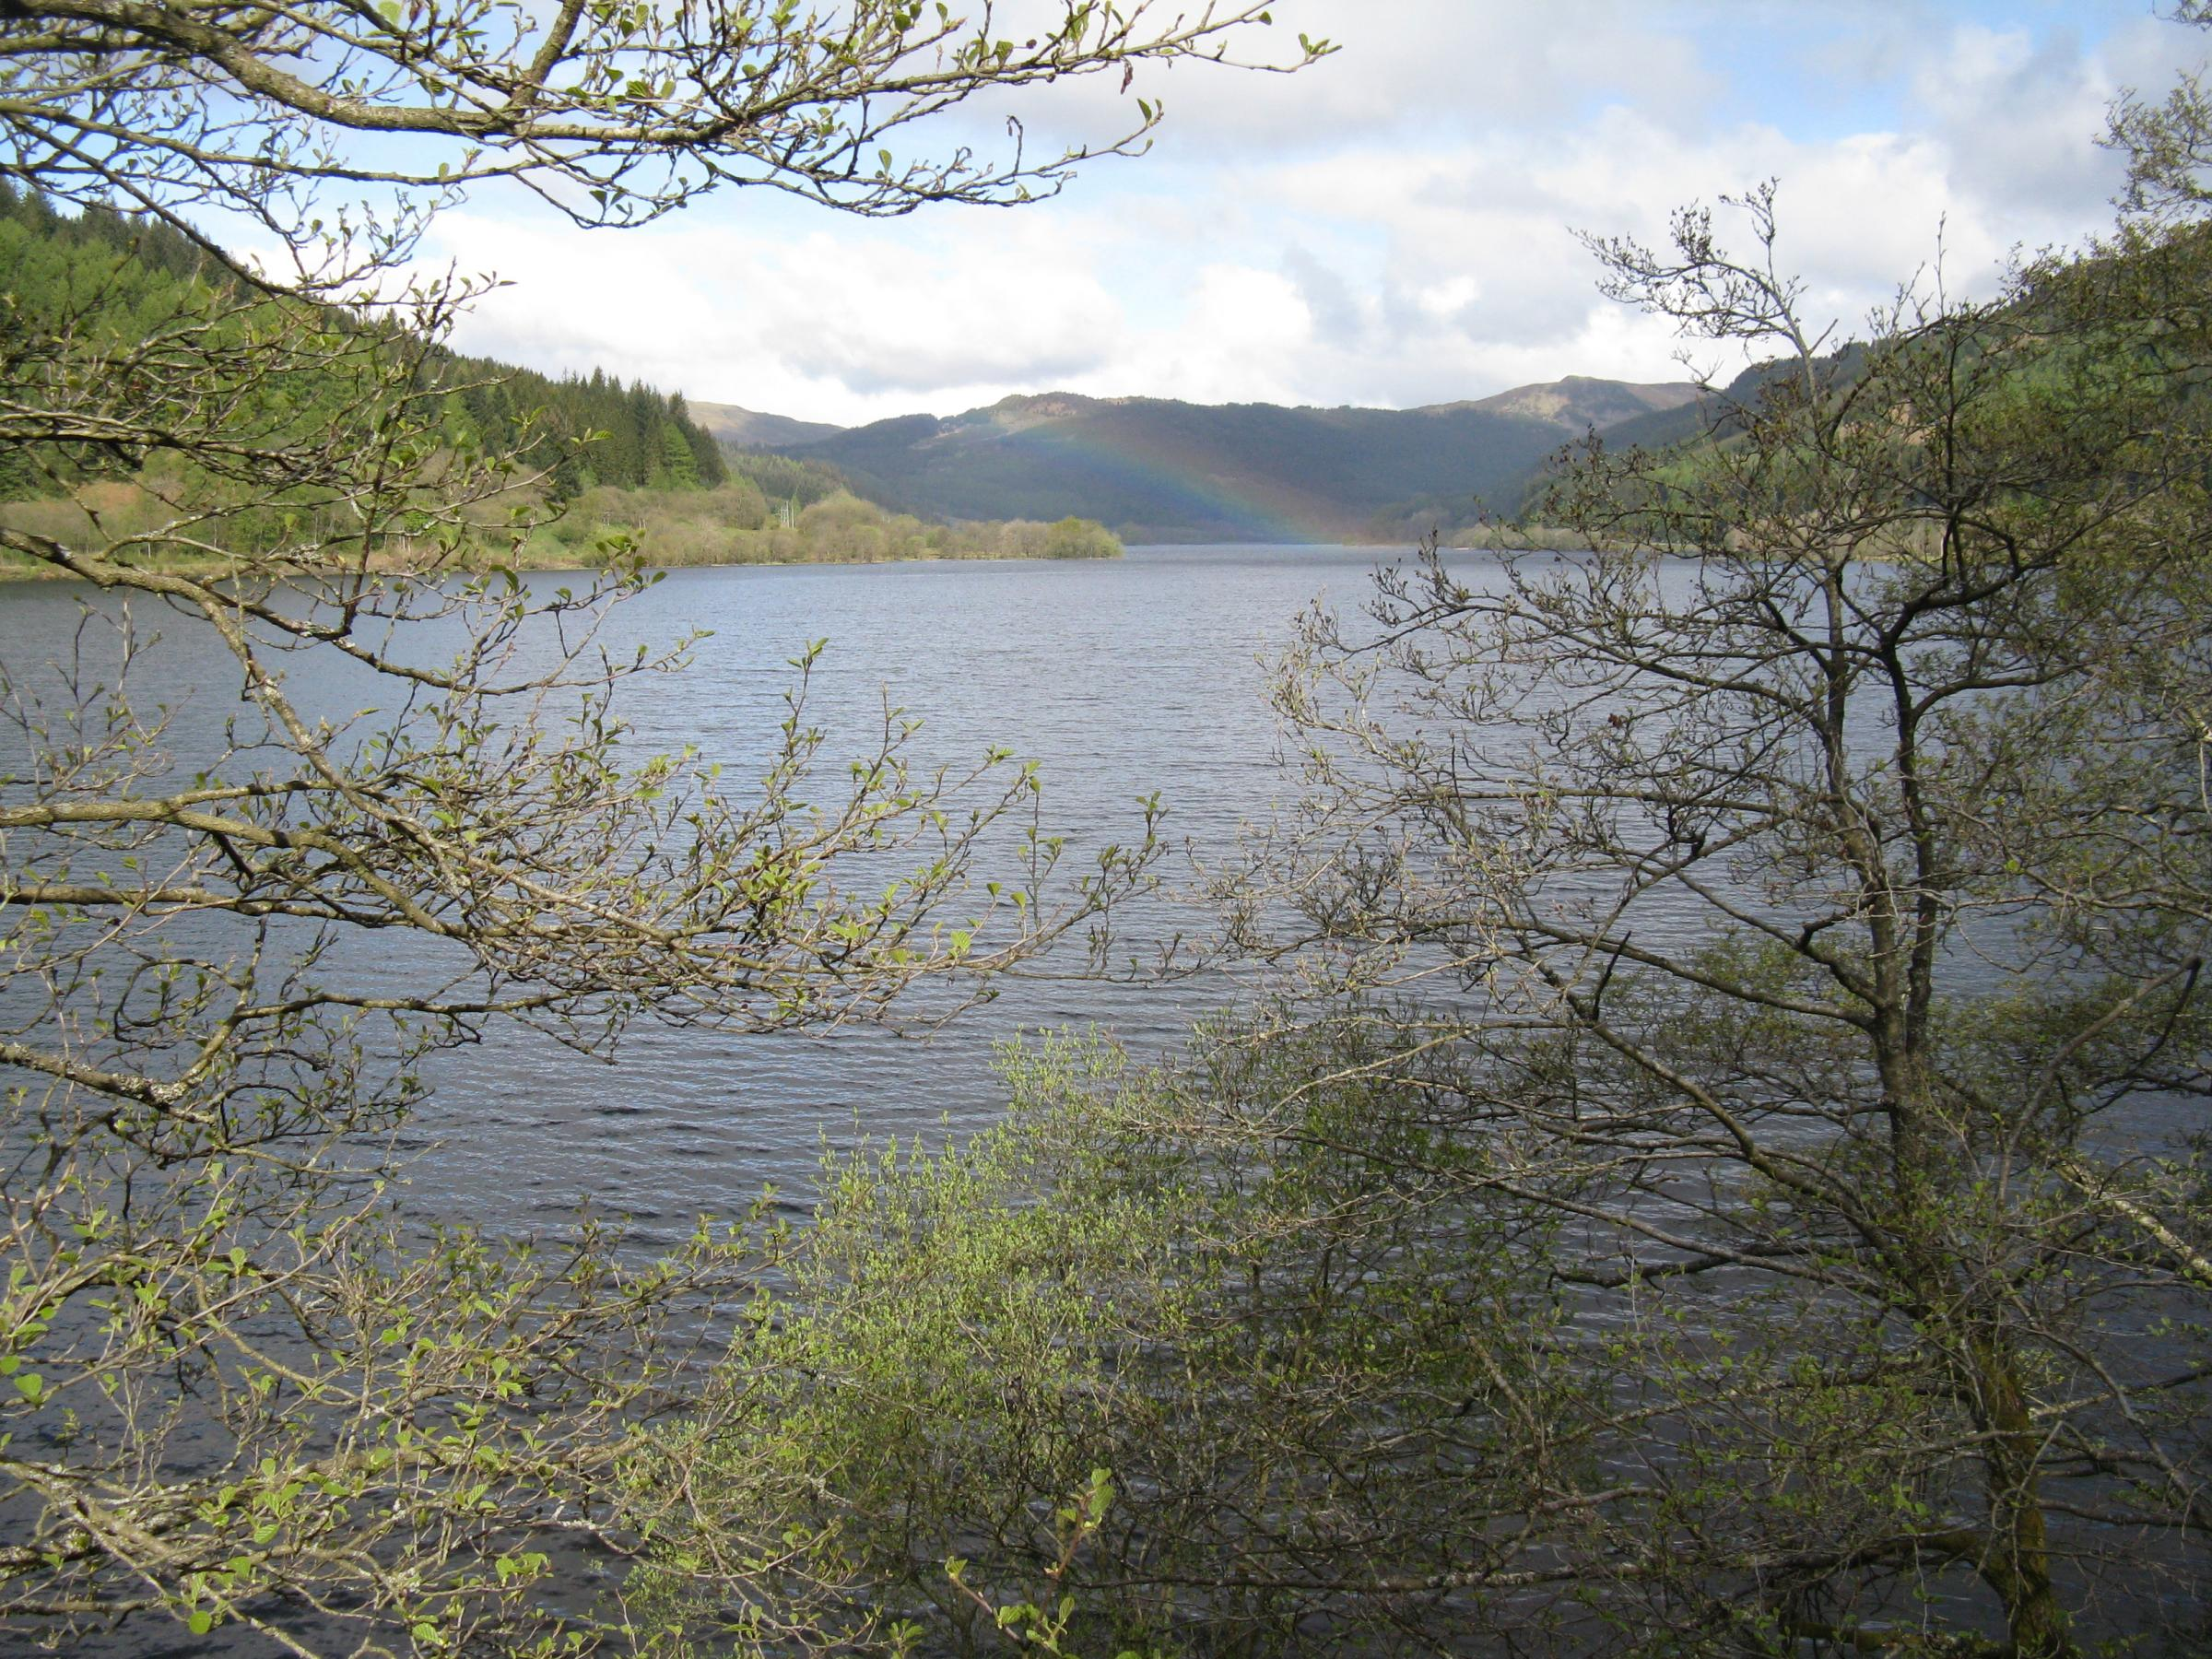 Loch Lubnaig. Image M J Richardson and licensed for reuse under Creative Commons Licence